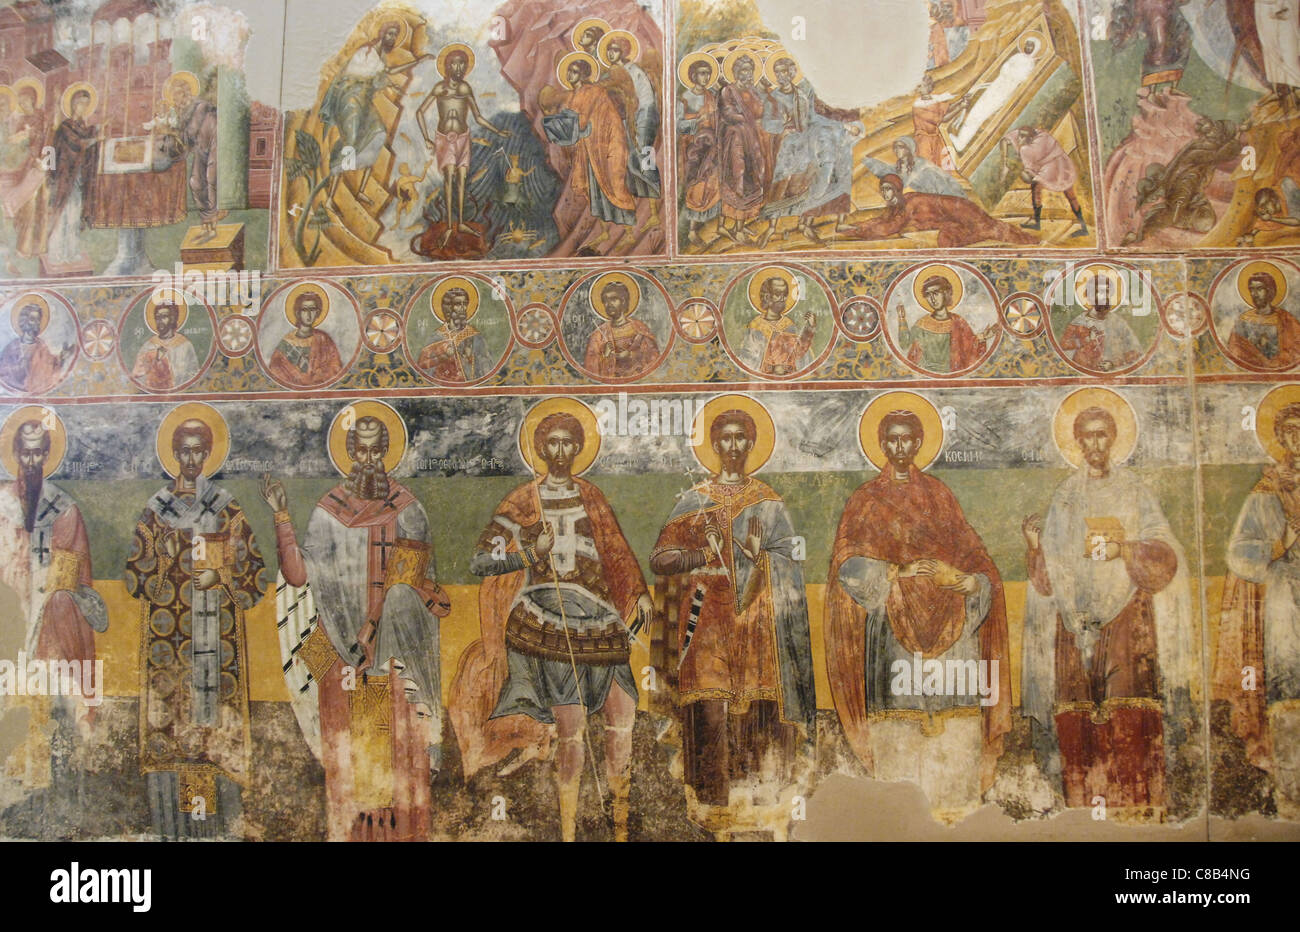 Byzantine Art. Greece. Frescoes from the Monastery of St. Andrew in Mesovouni Volimes. Anonymous. 17th century. - Stock Image